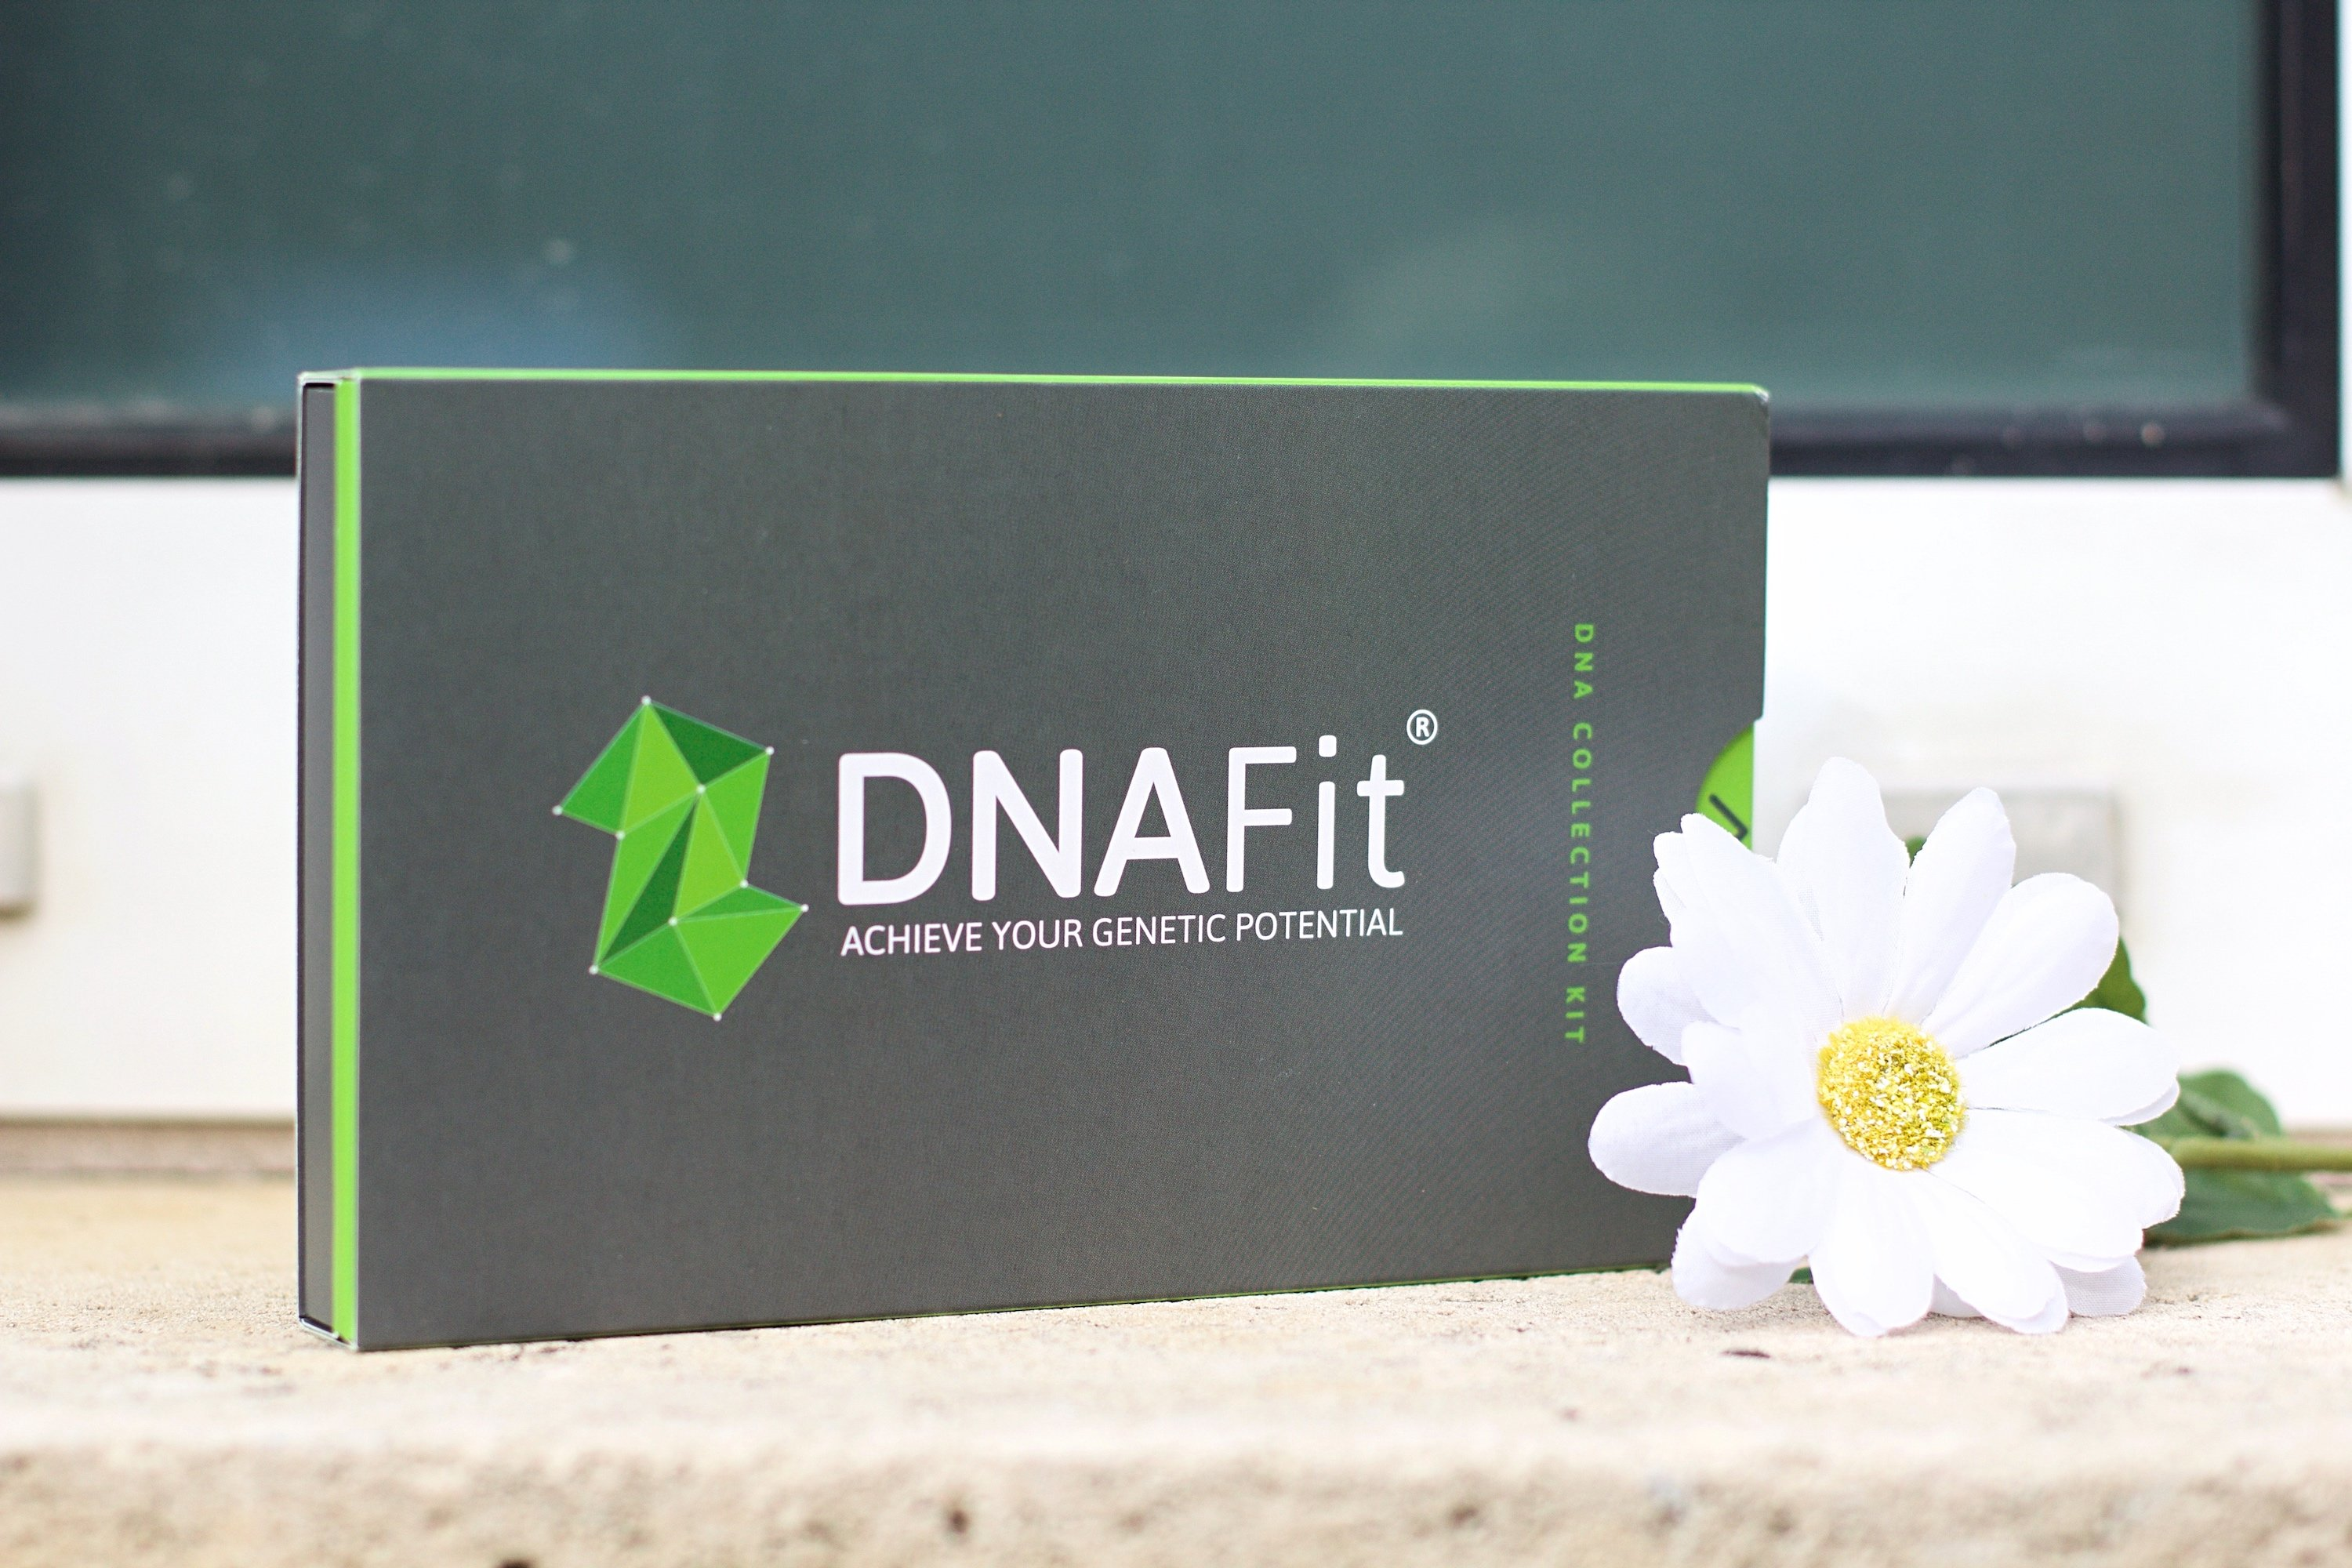 jenna minnie jennaminnie fashion blog dnafit dna fit